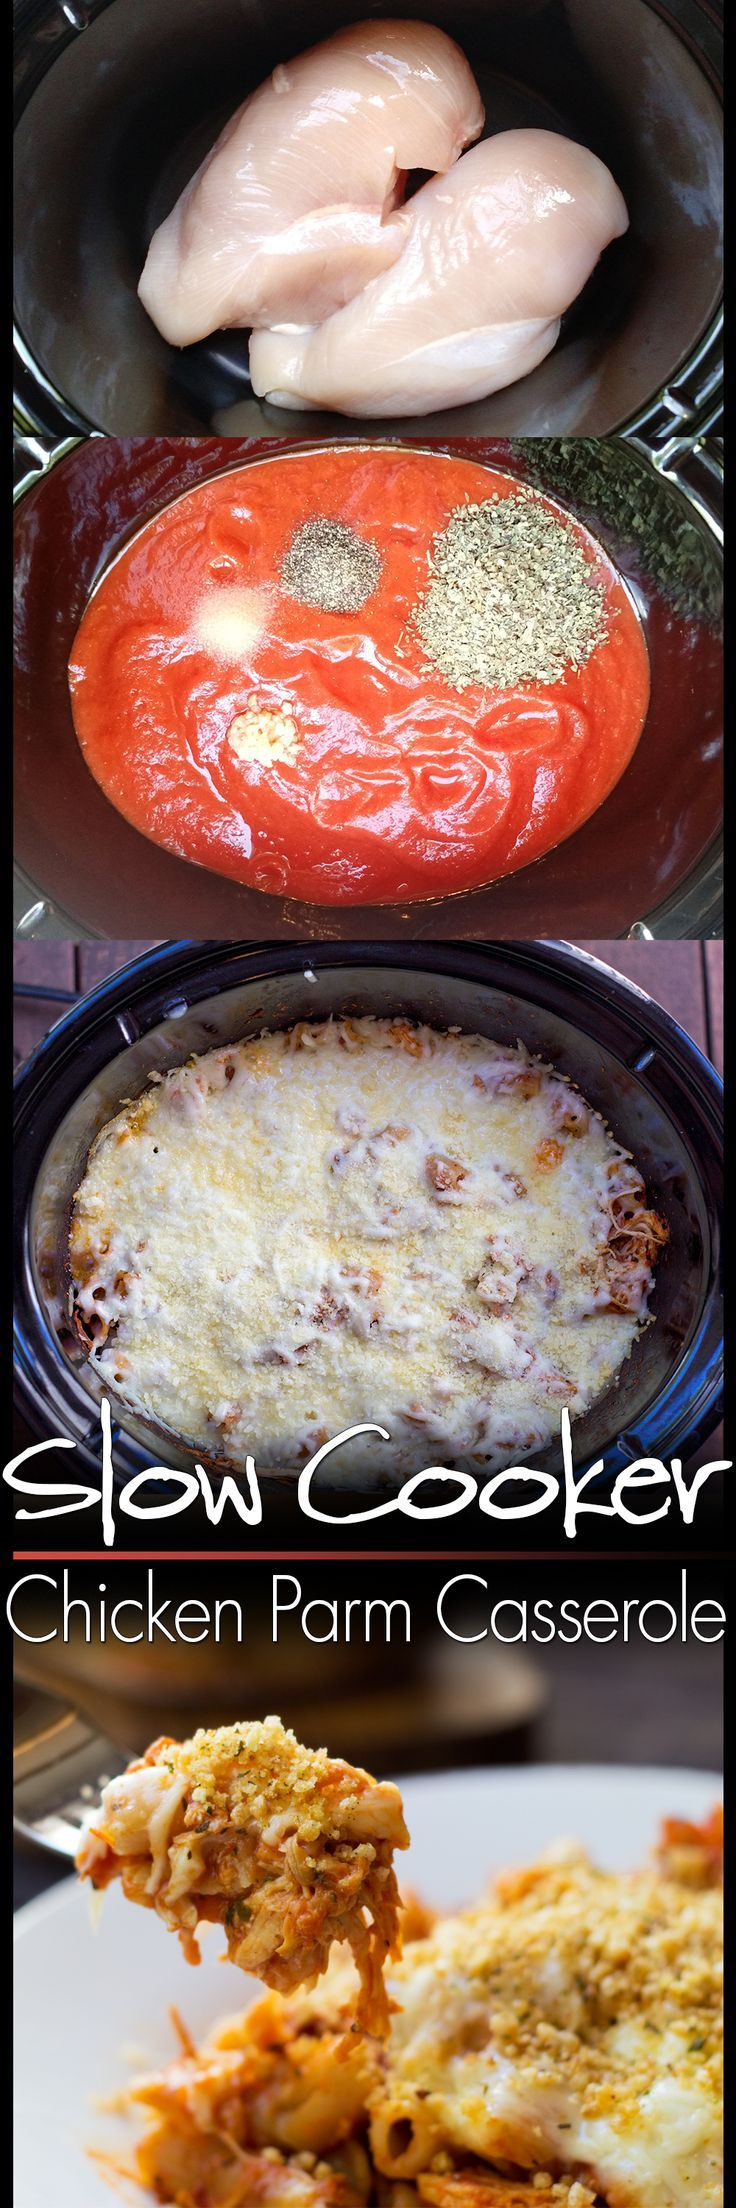 MY whole family LOVED this Slow Cooker Chicken Parmesan Casserole. And so easy to make!